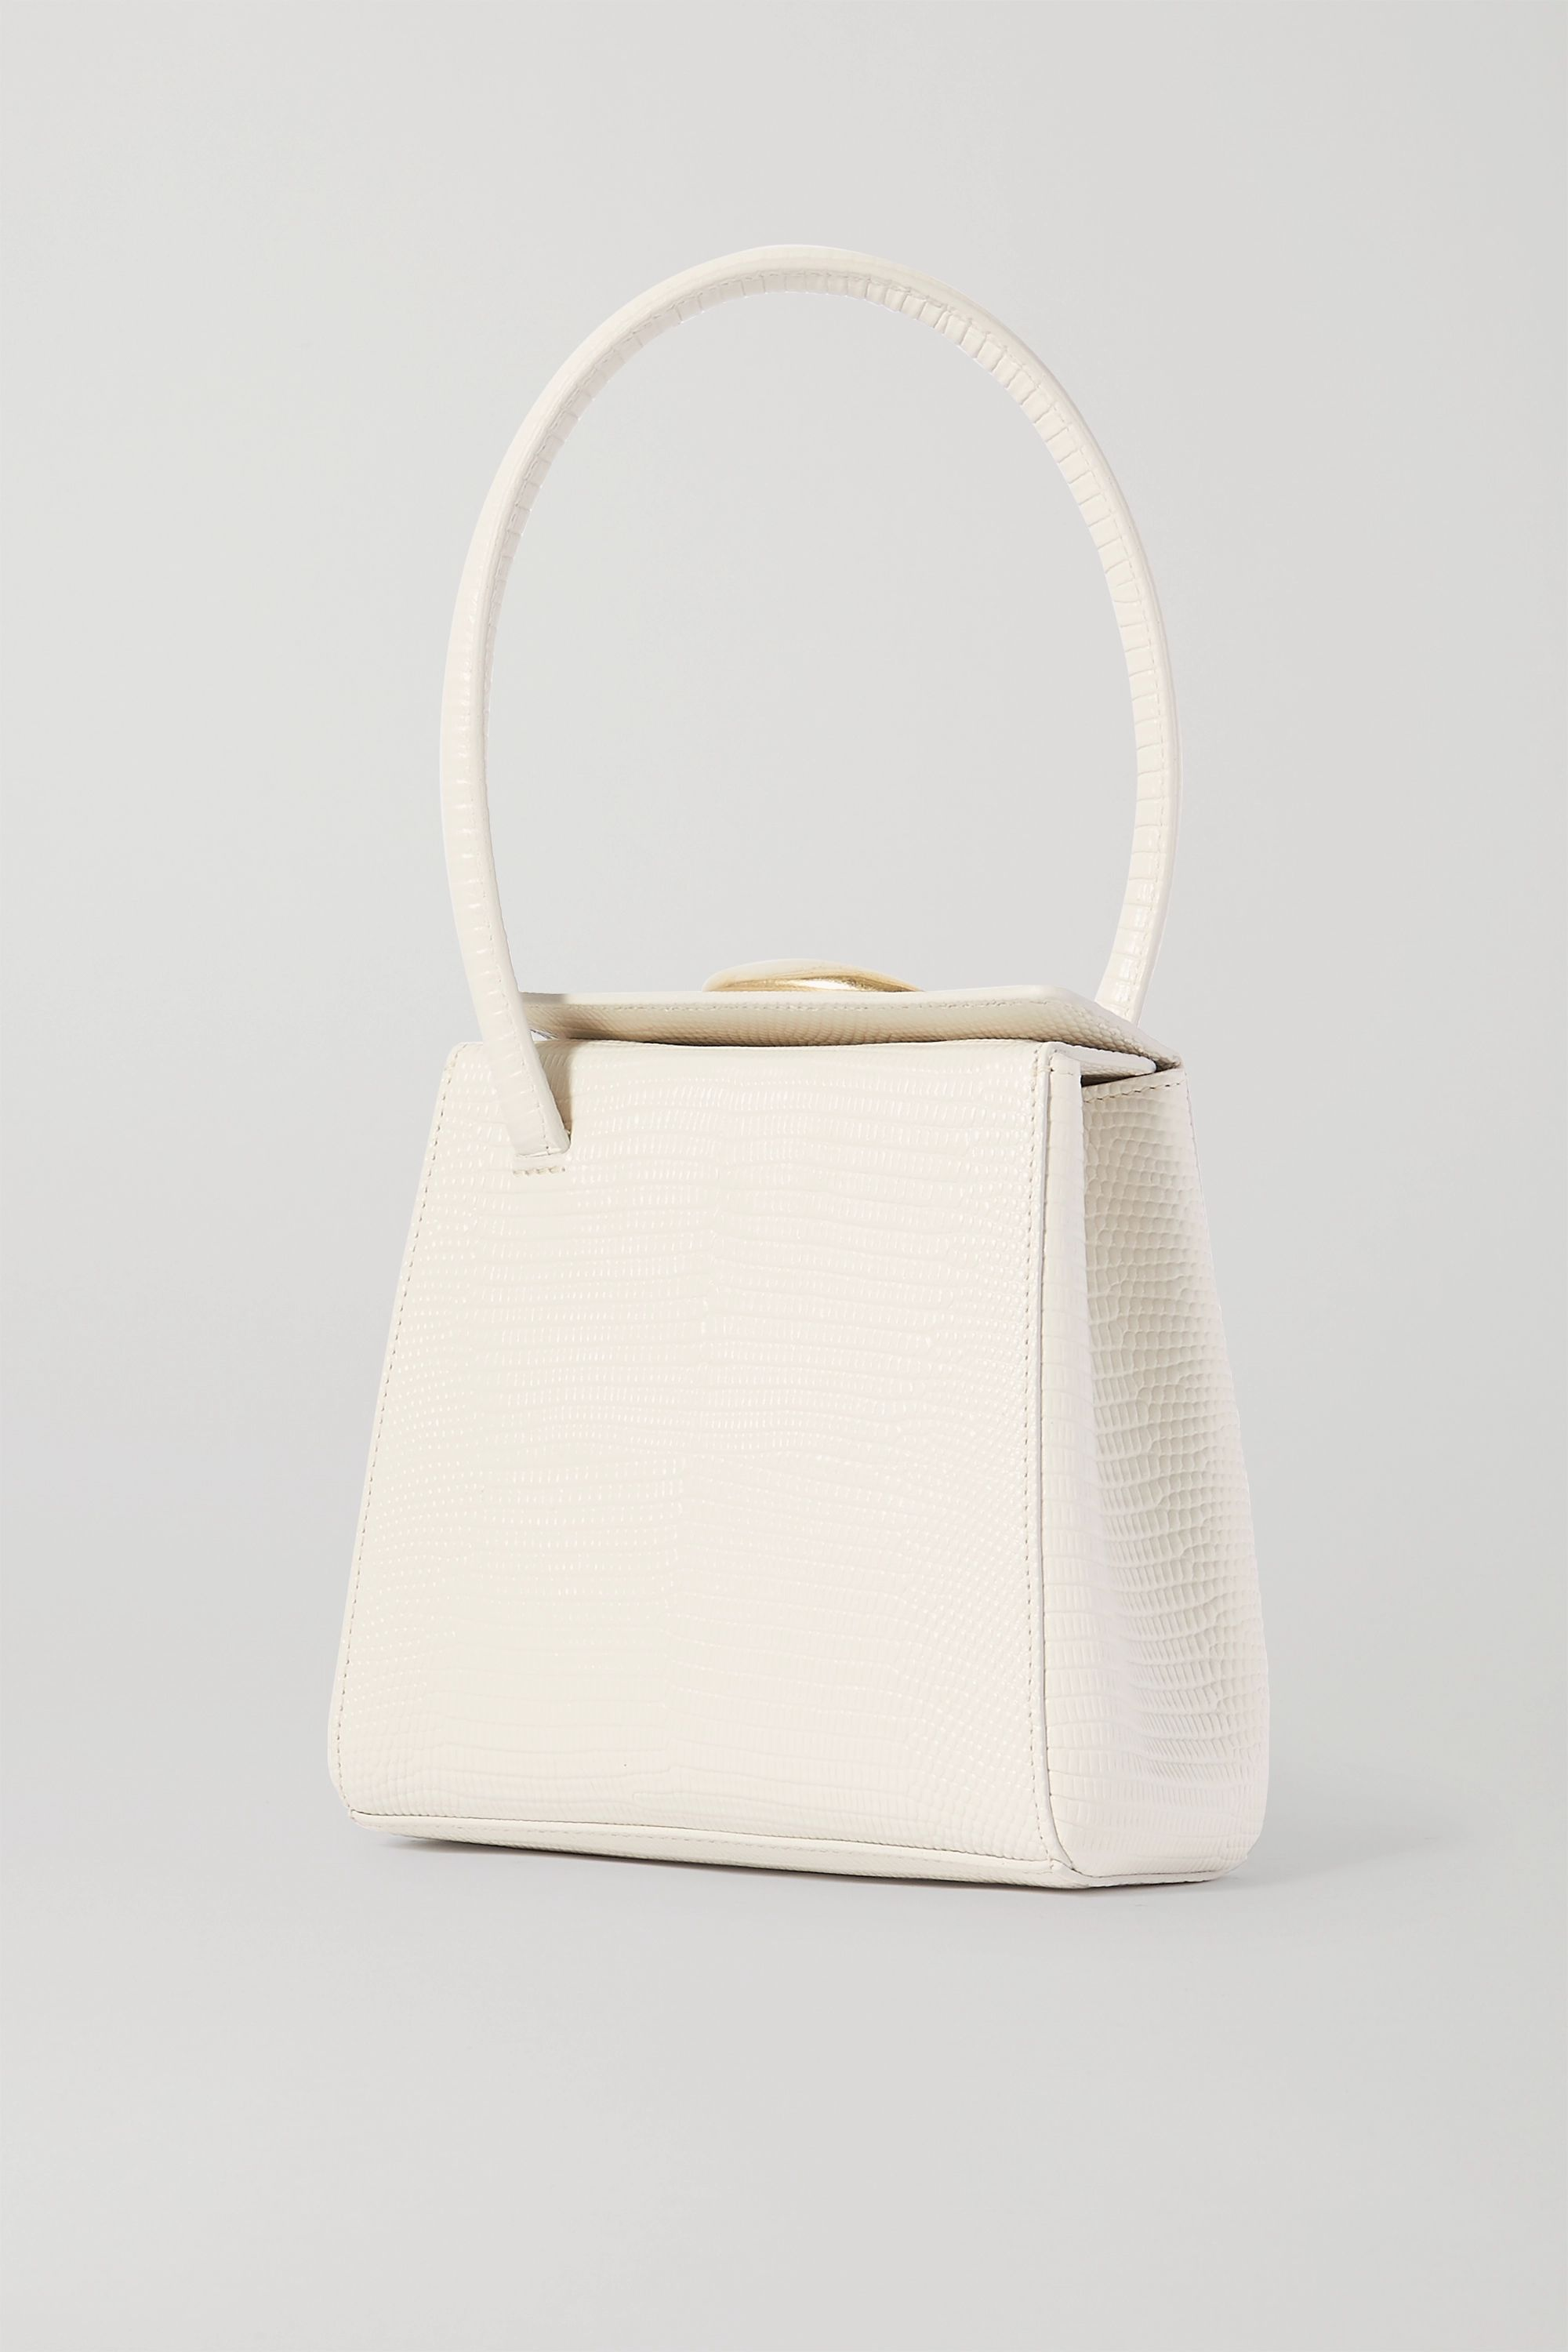 Little Liffner Mademoiselle lizard-effect leather tote